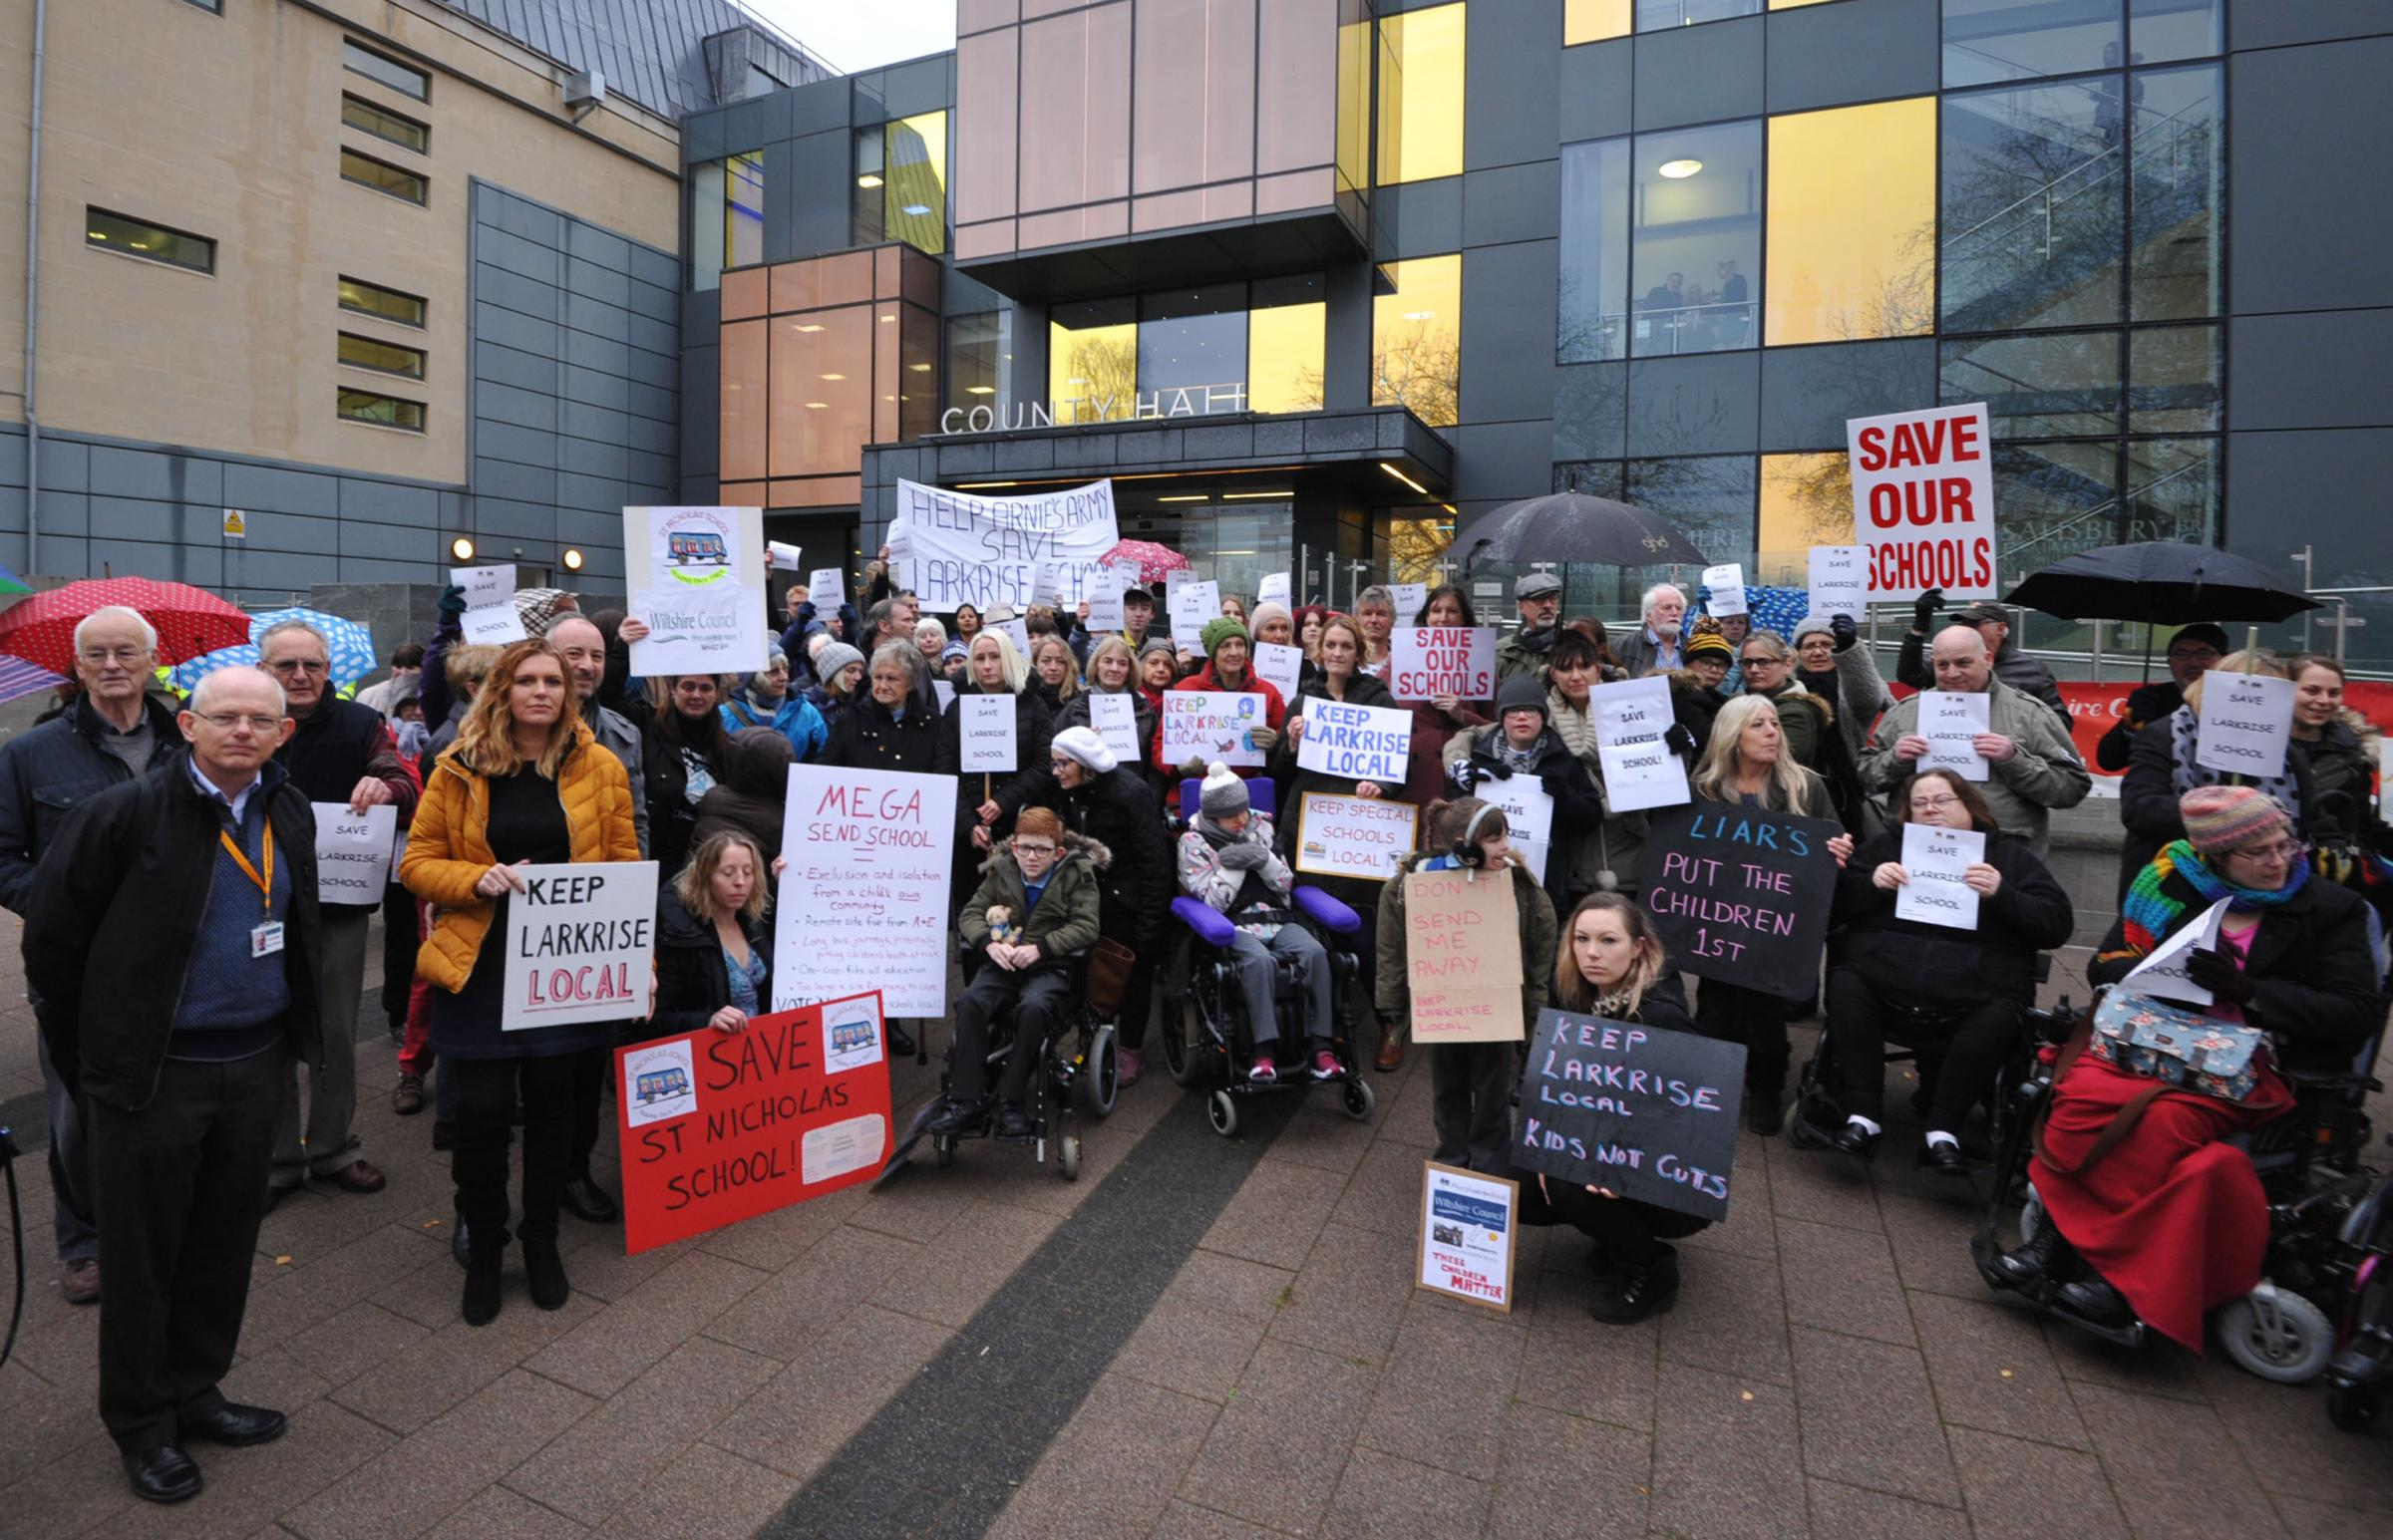 Larkrise  School  Protest against closure. Campaigners outside Country Hall against the  proposed closure of Special Schools. Larkrise and St Nicholas.. Photo Trevor Porter 60072 5..